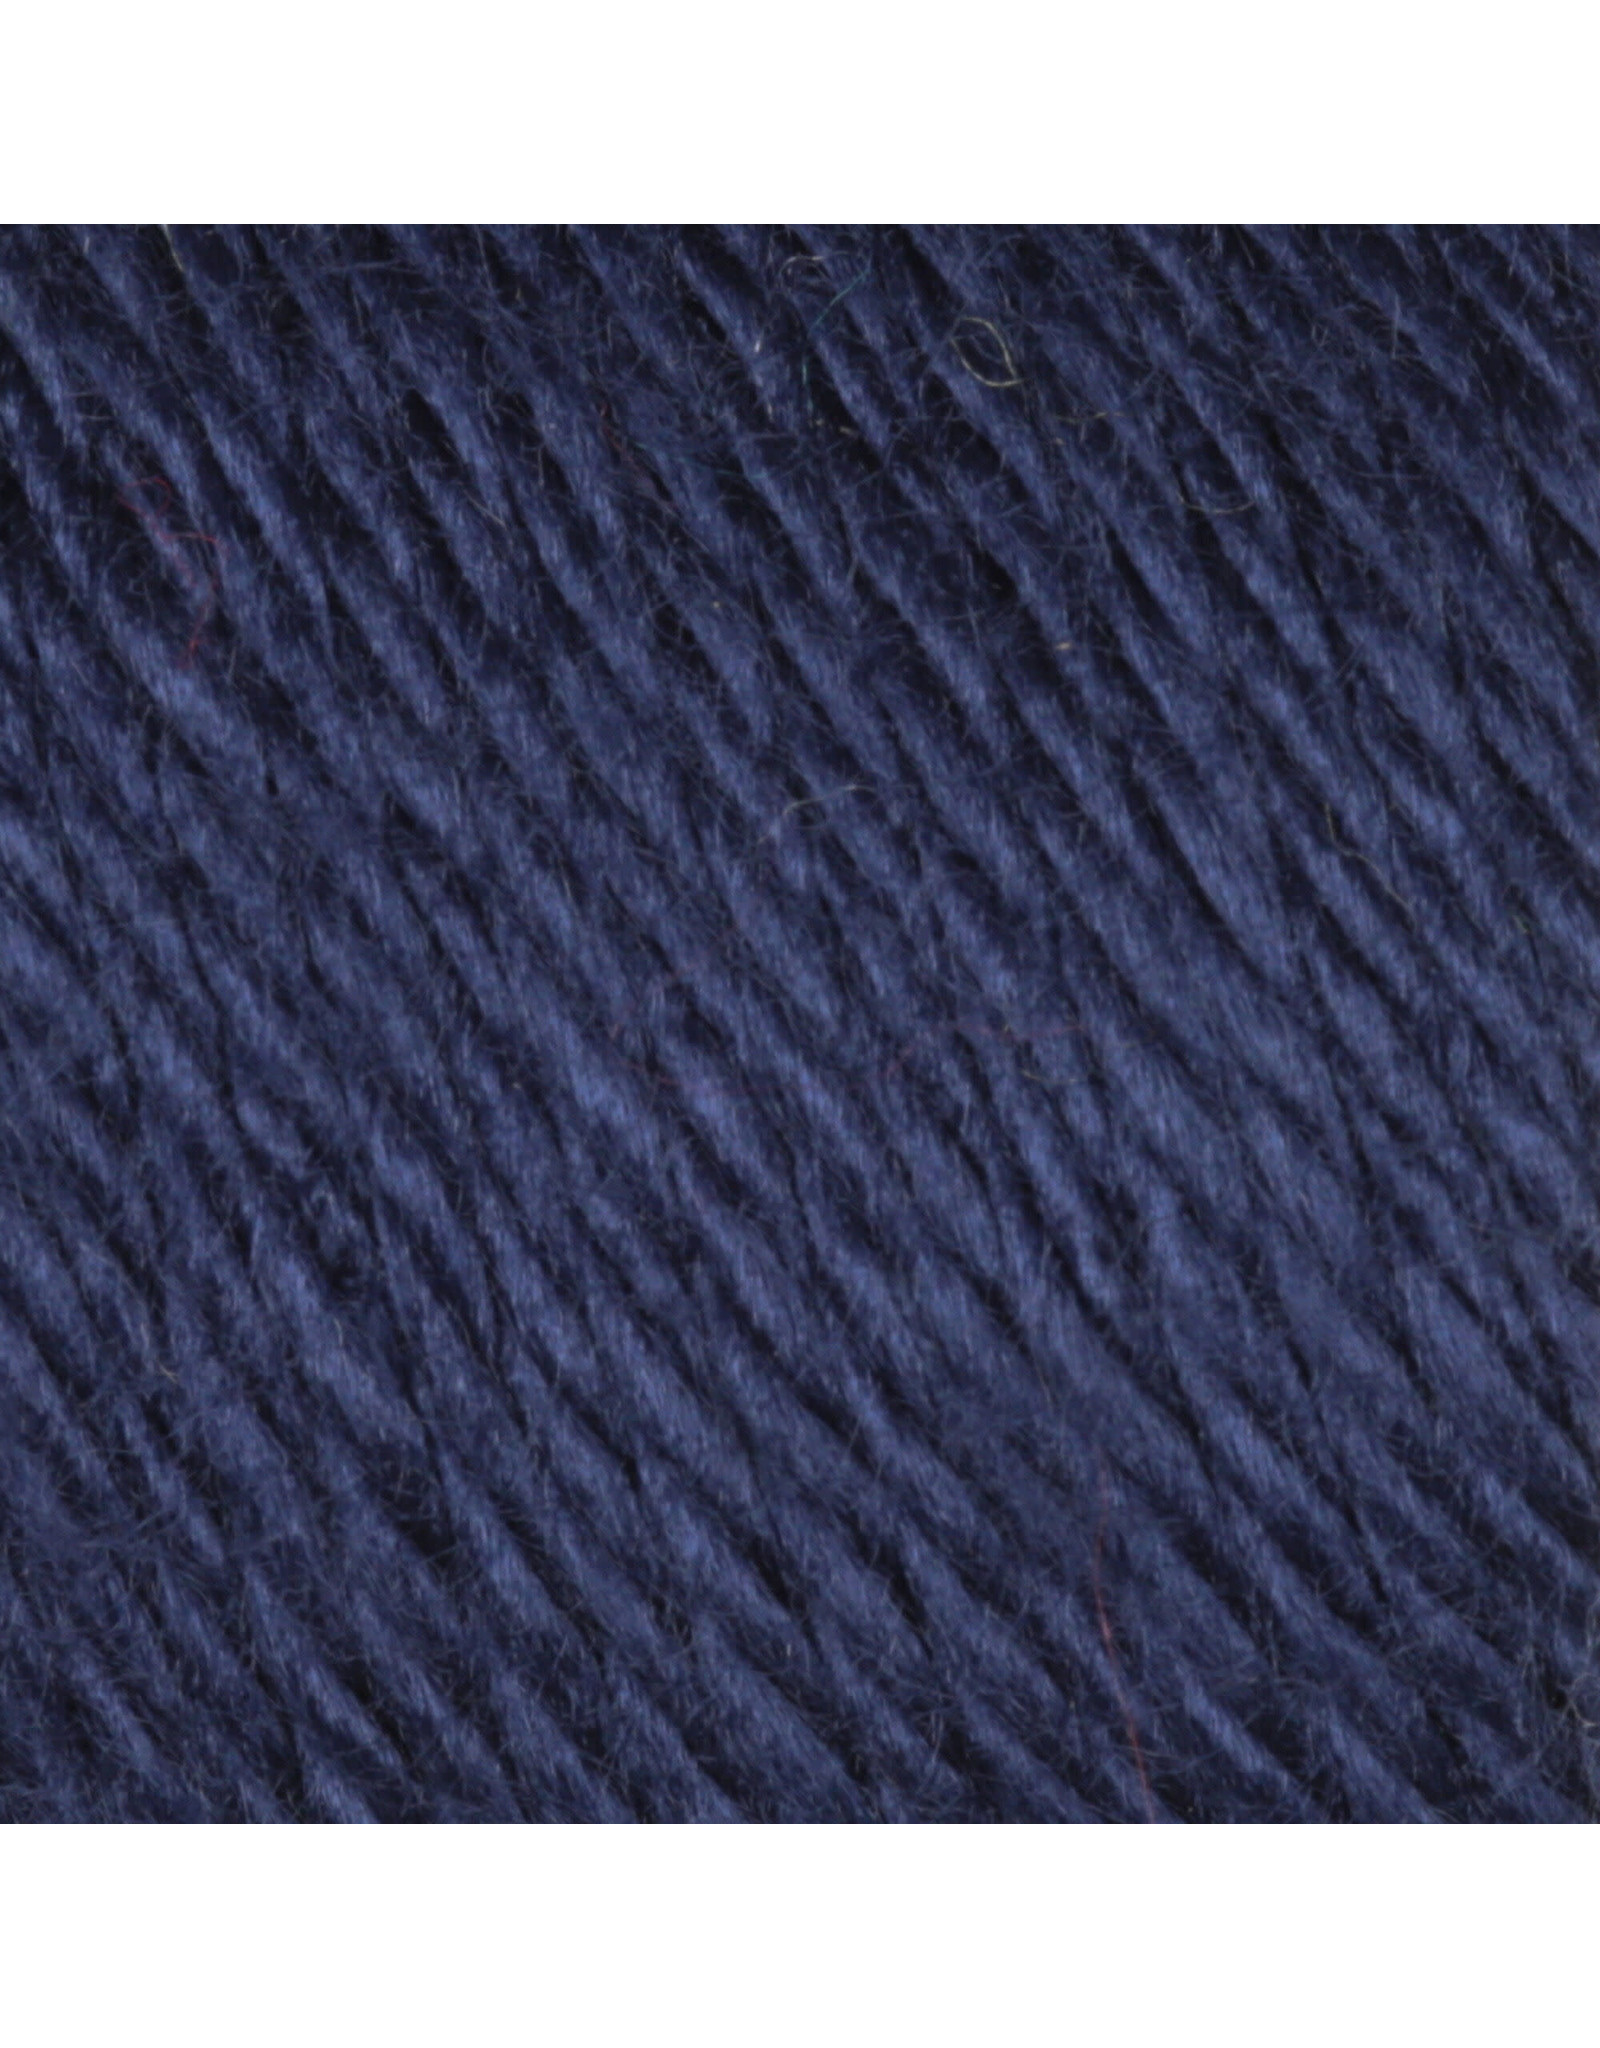 Dark Country Blue - Simply Soft - Caron